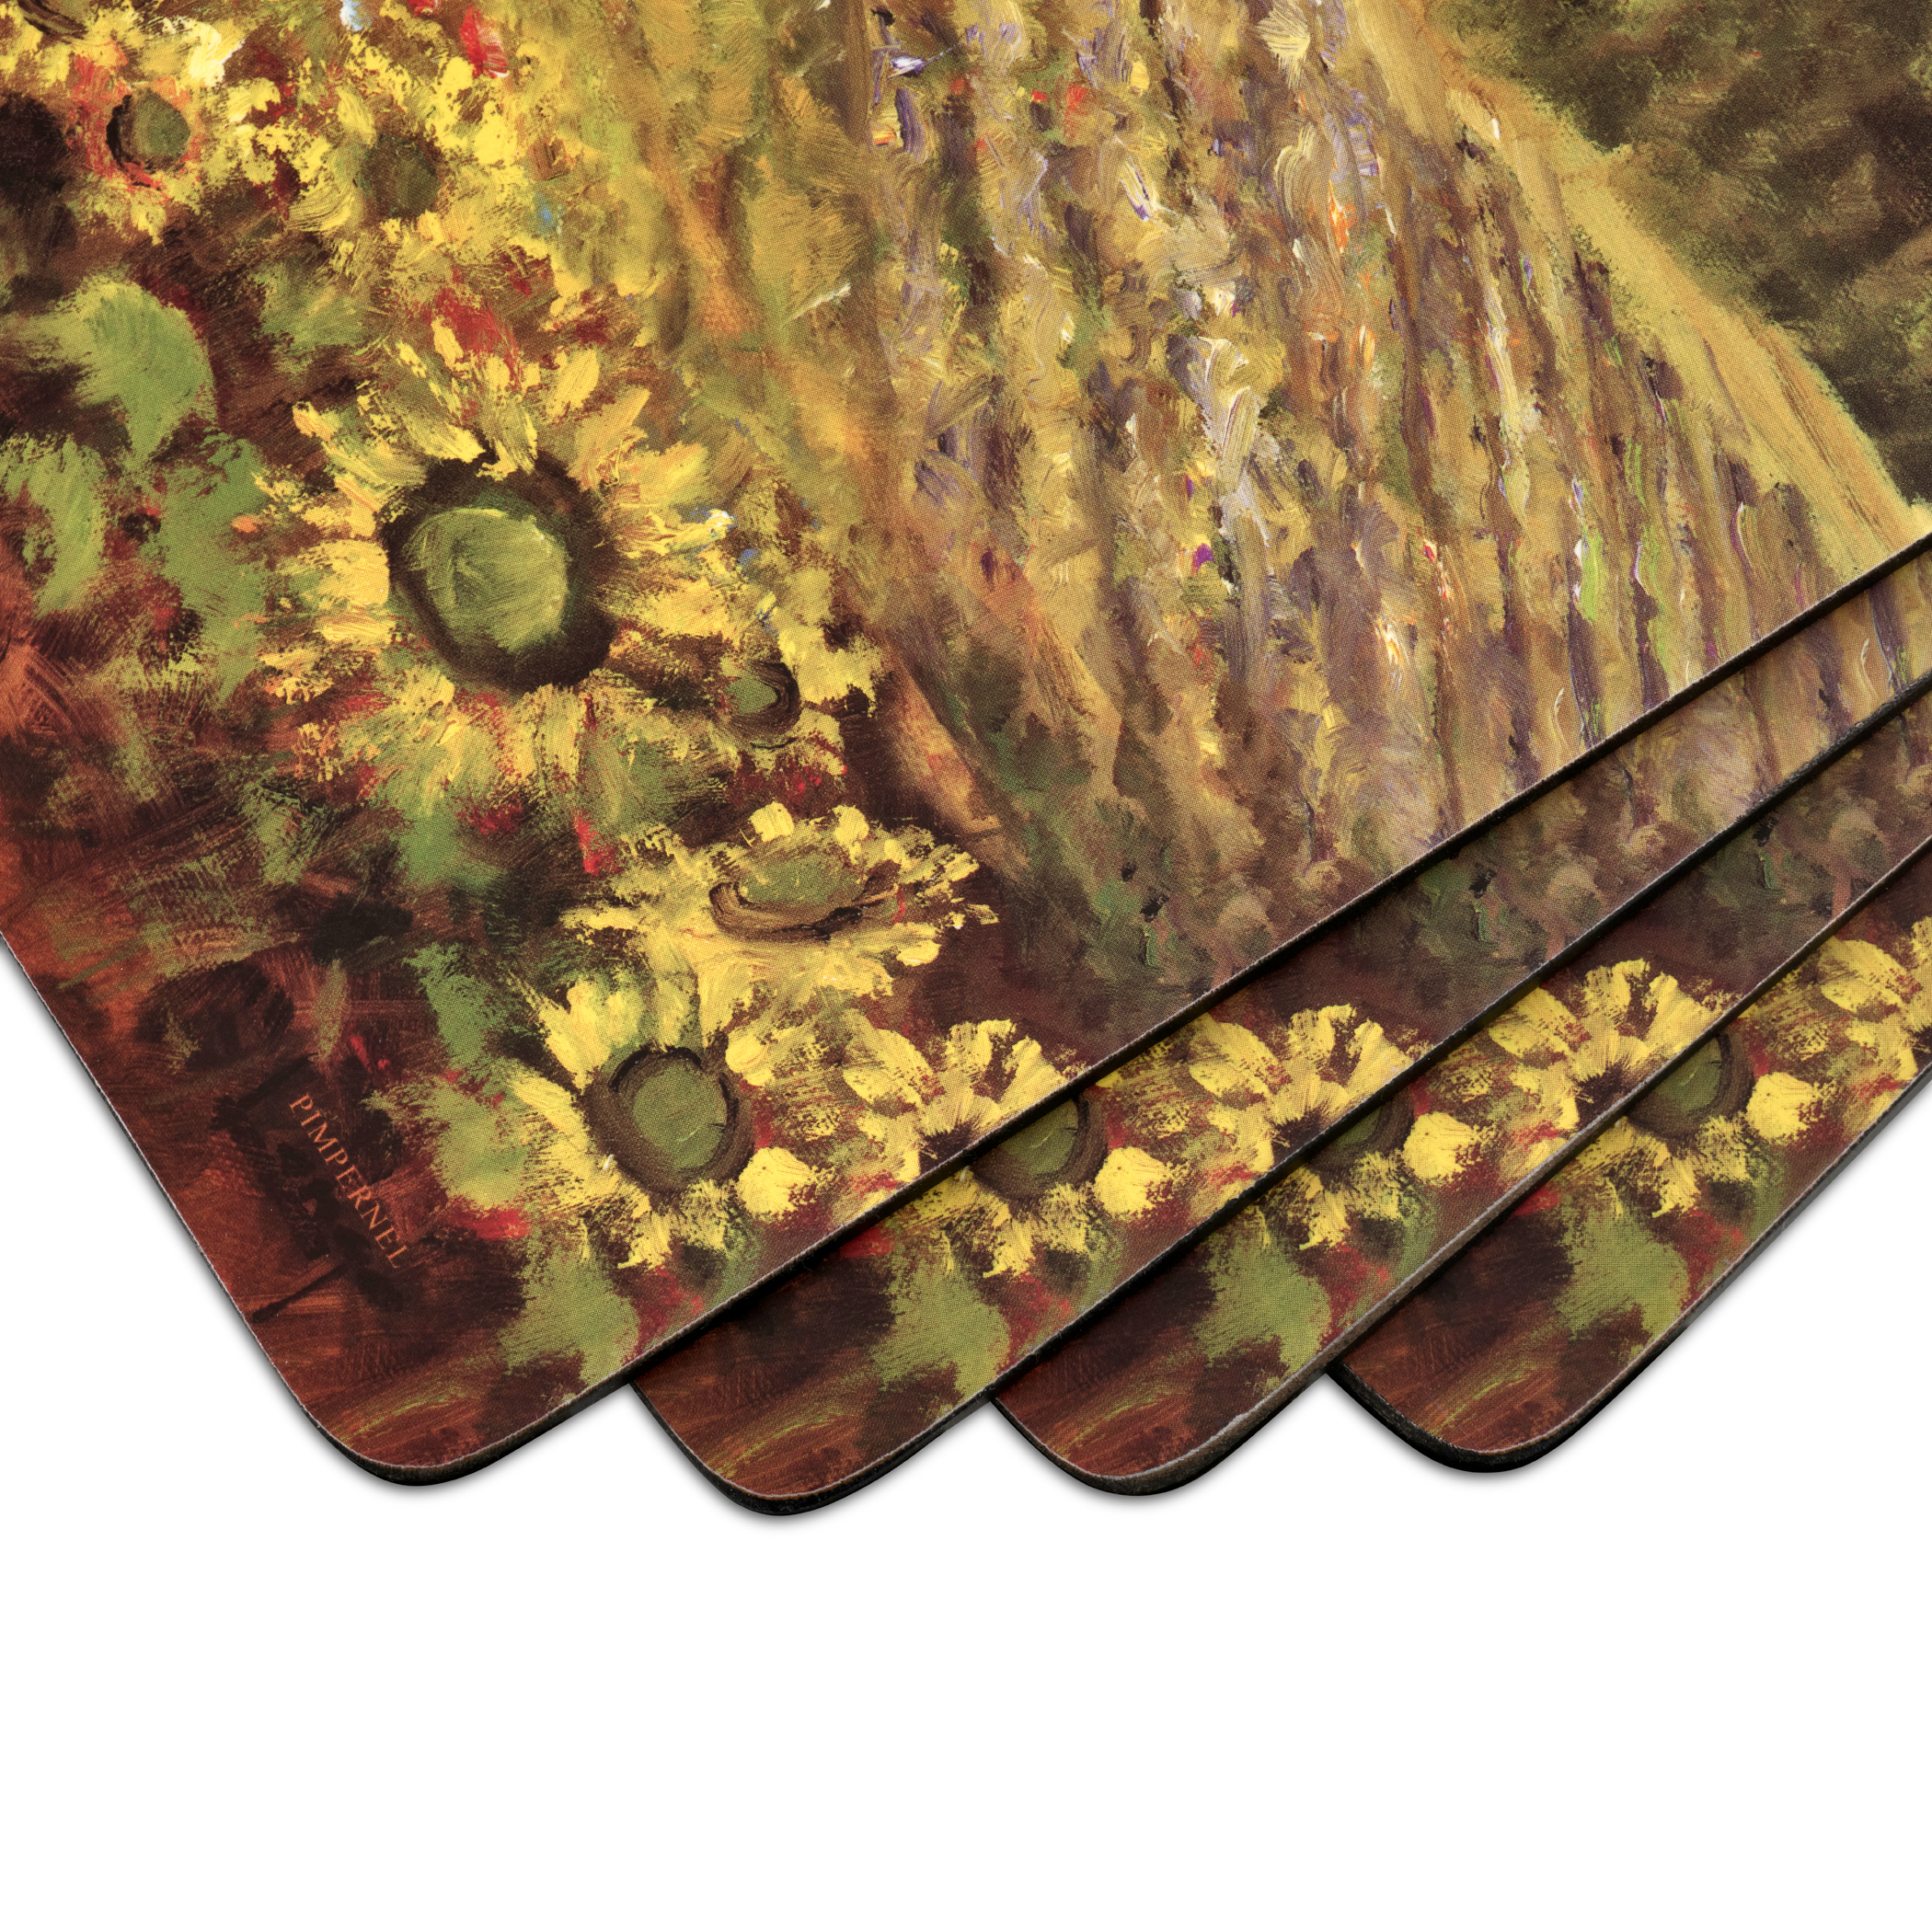 Pimpernel Tuscany Placemats Set of 4 image number 1